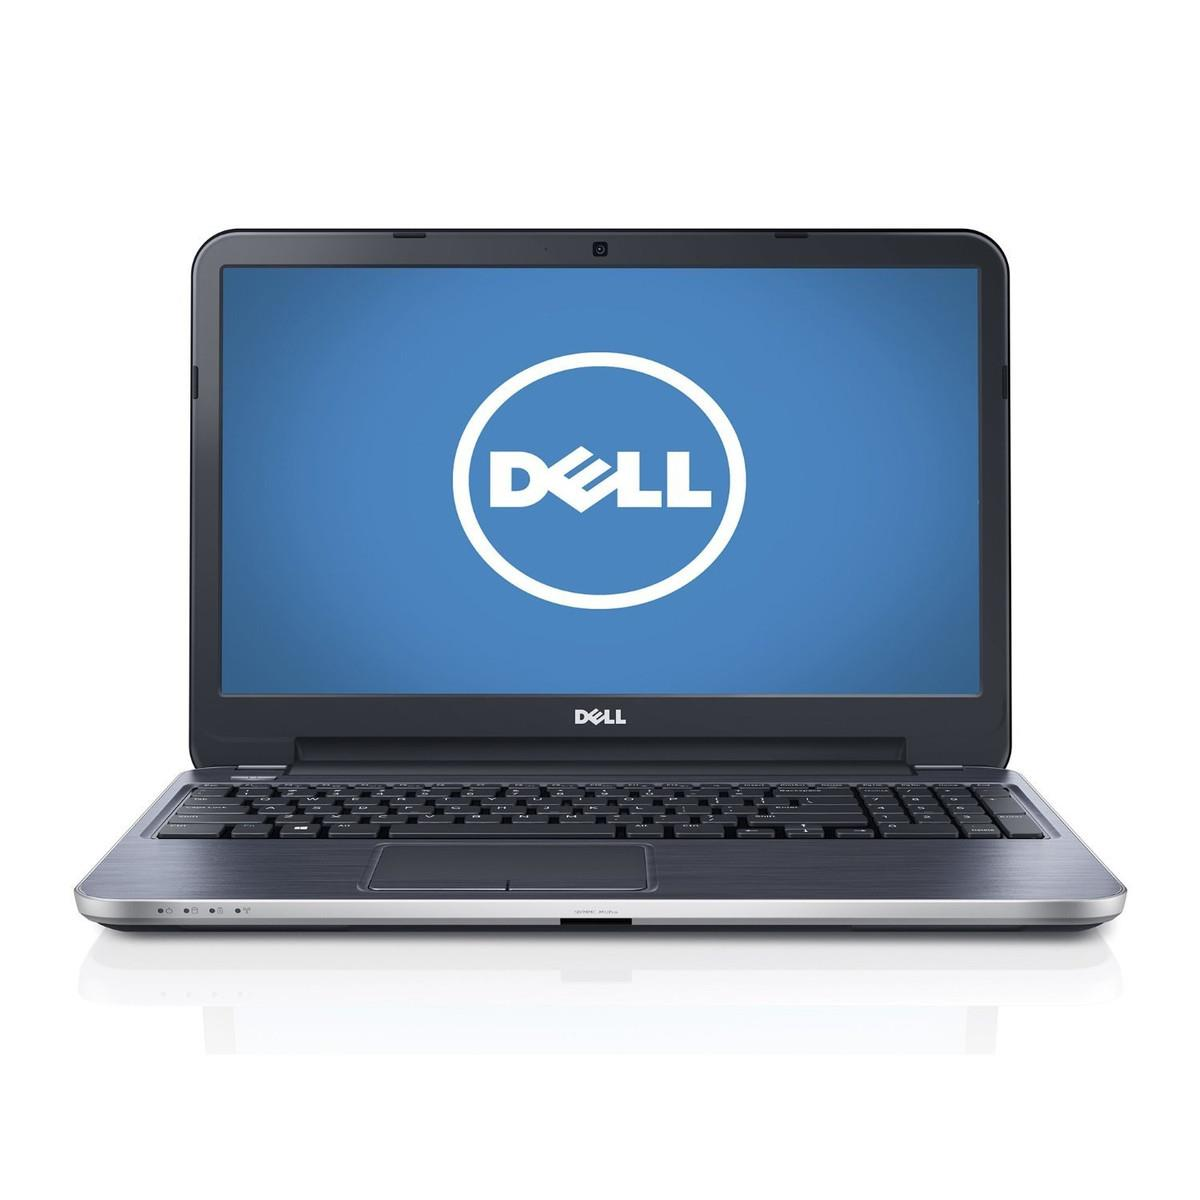 Slow working after 2 year - DELL INSPIRON 3537 Consumer Review